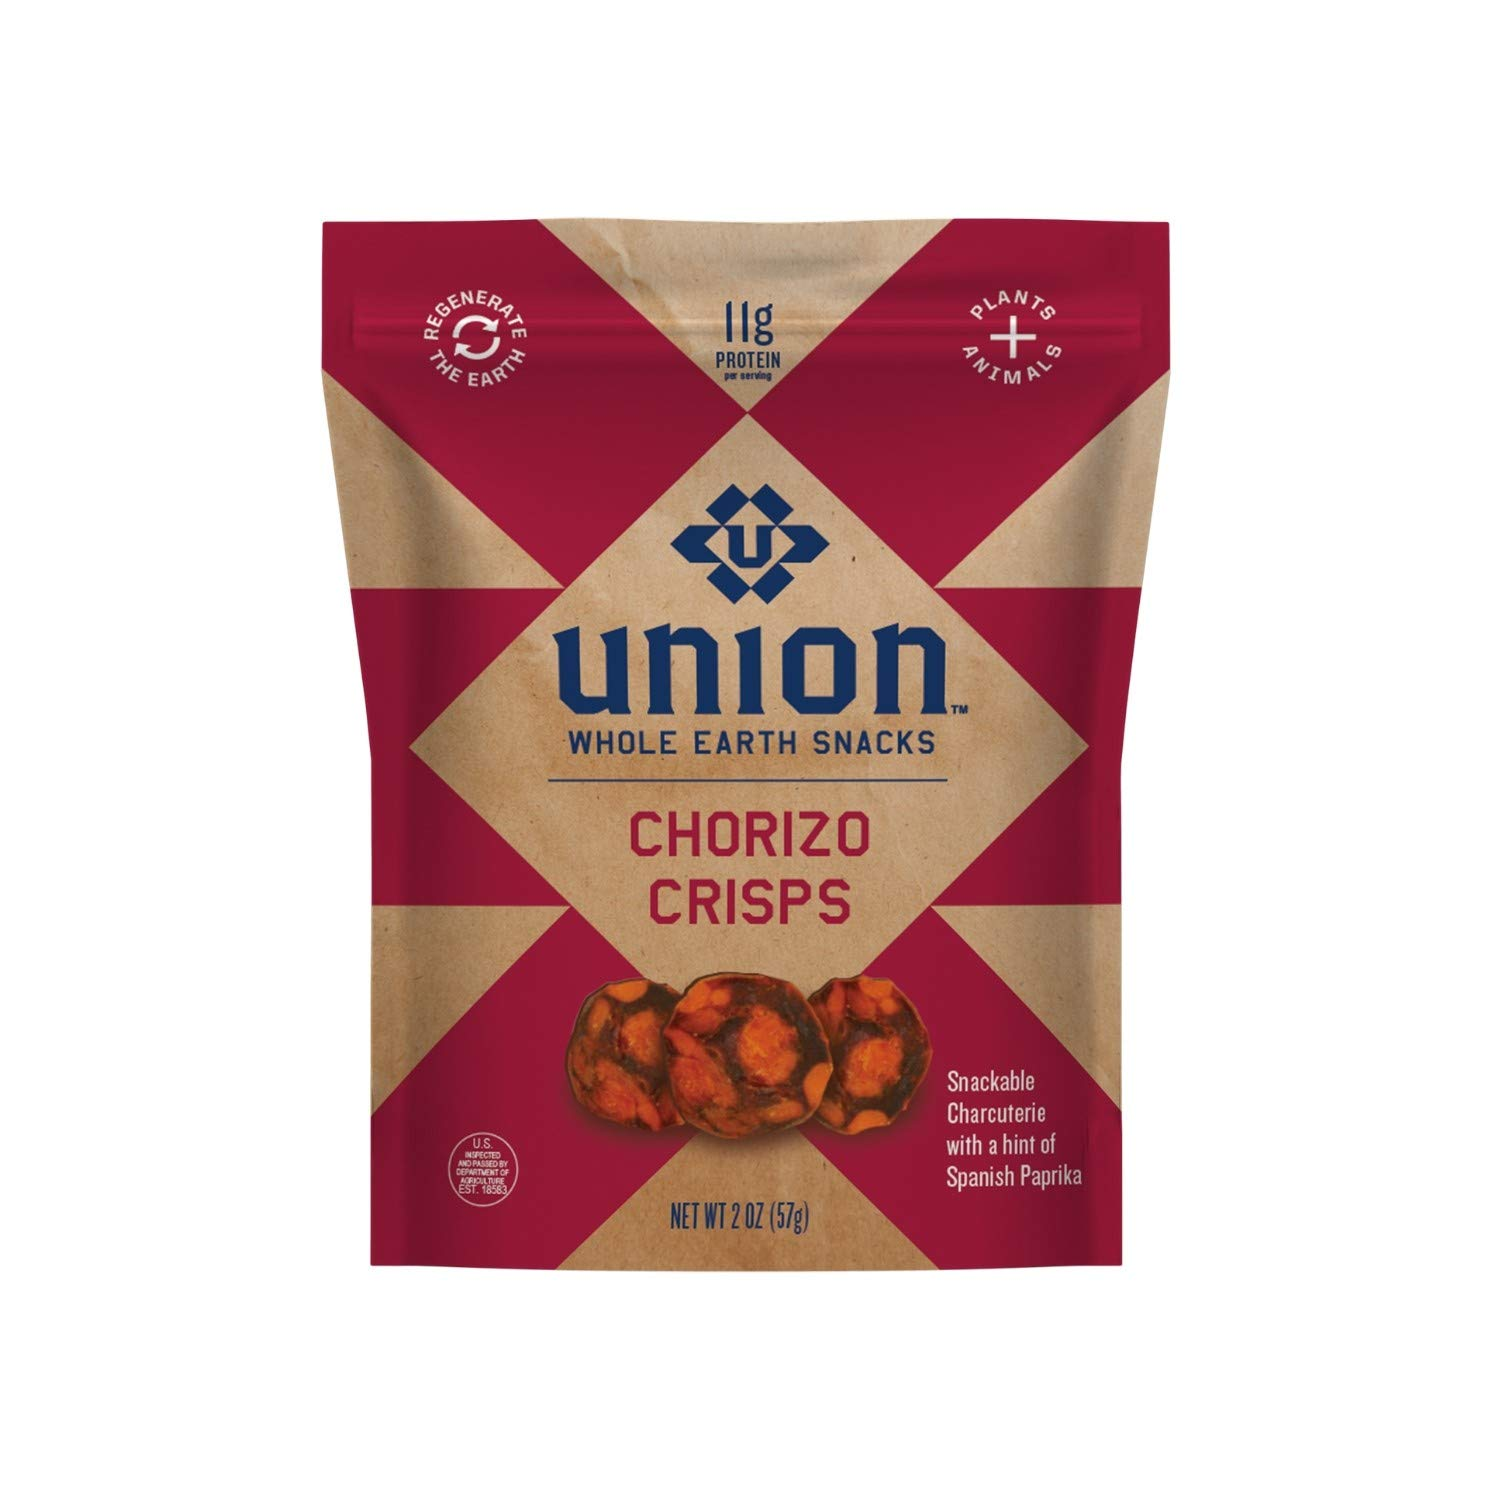 UNION Chorizo Charcuterie Crisps - Whole Earth Snacks - Healthy Food, Keto Snacks, High Protein & Gluten Free - Paleo and Keto Diet Friendly - Pack of Four